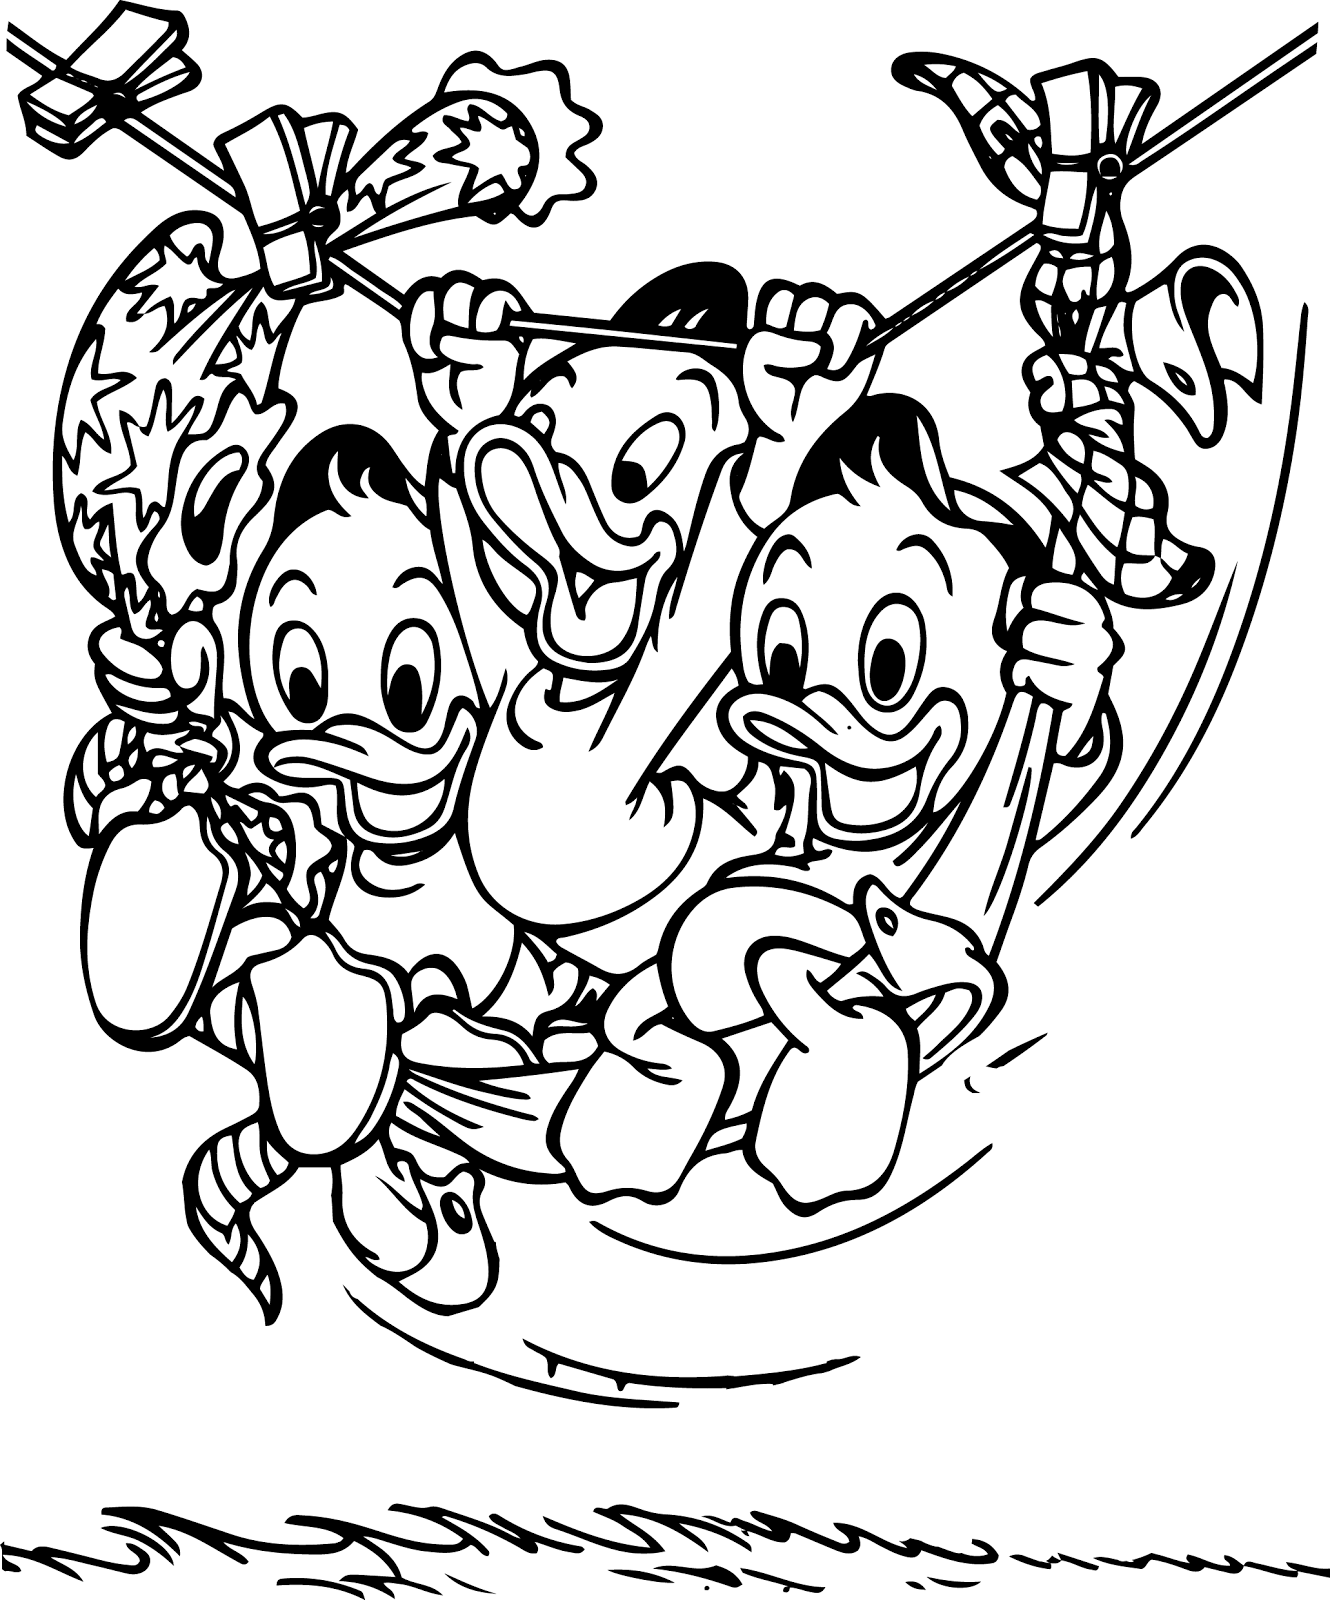 character coloring pages disney cartoons cute girl coloring pictures 476365 coloring pages character